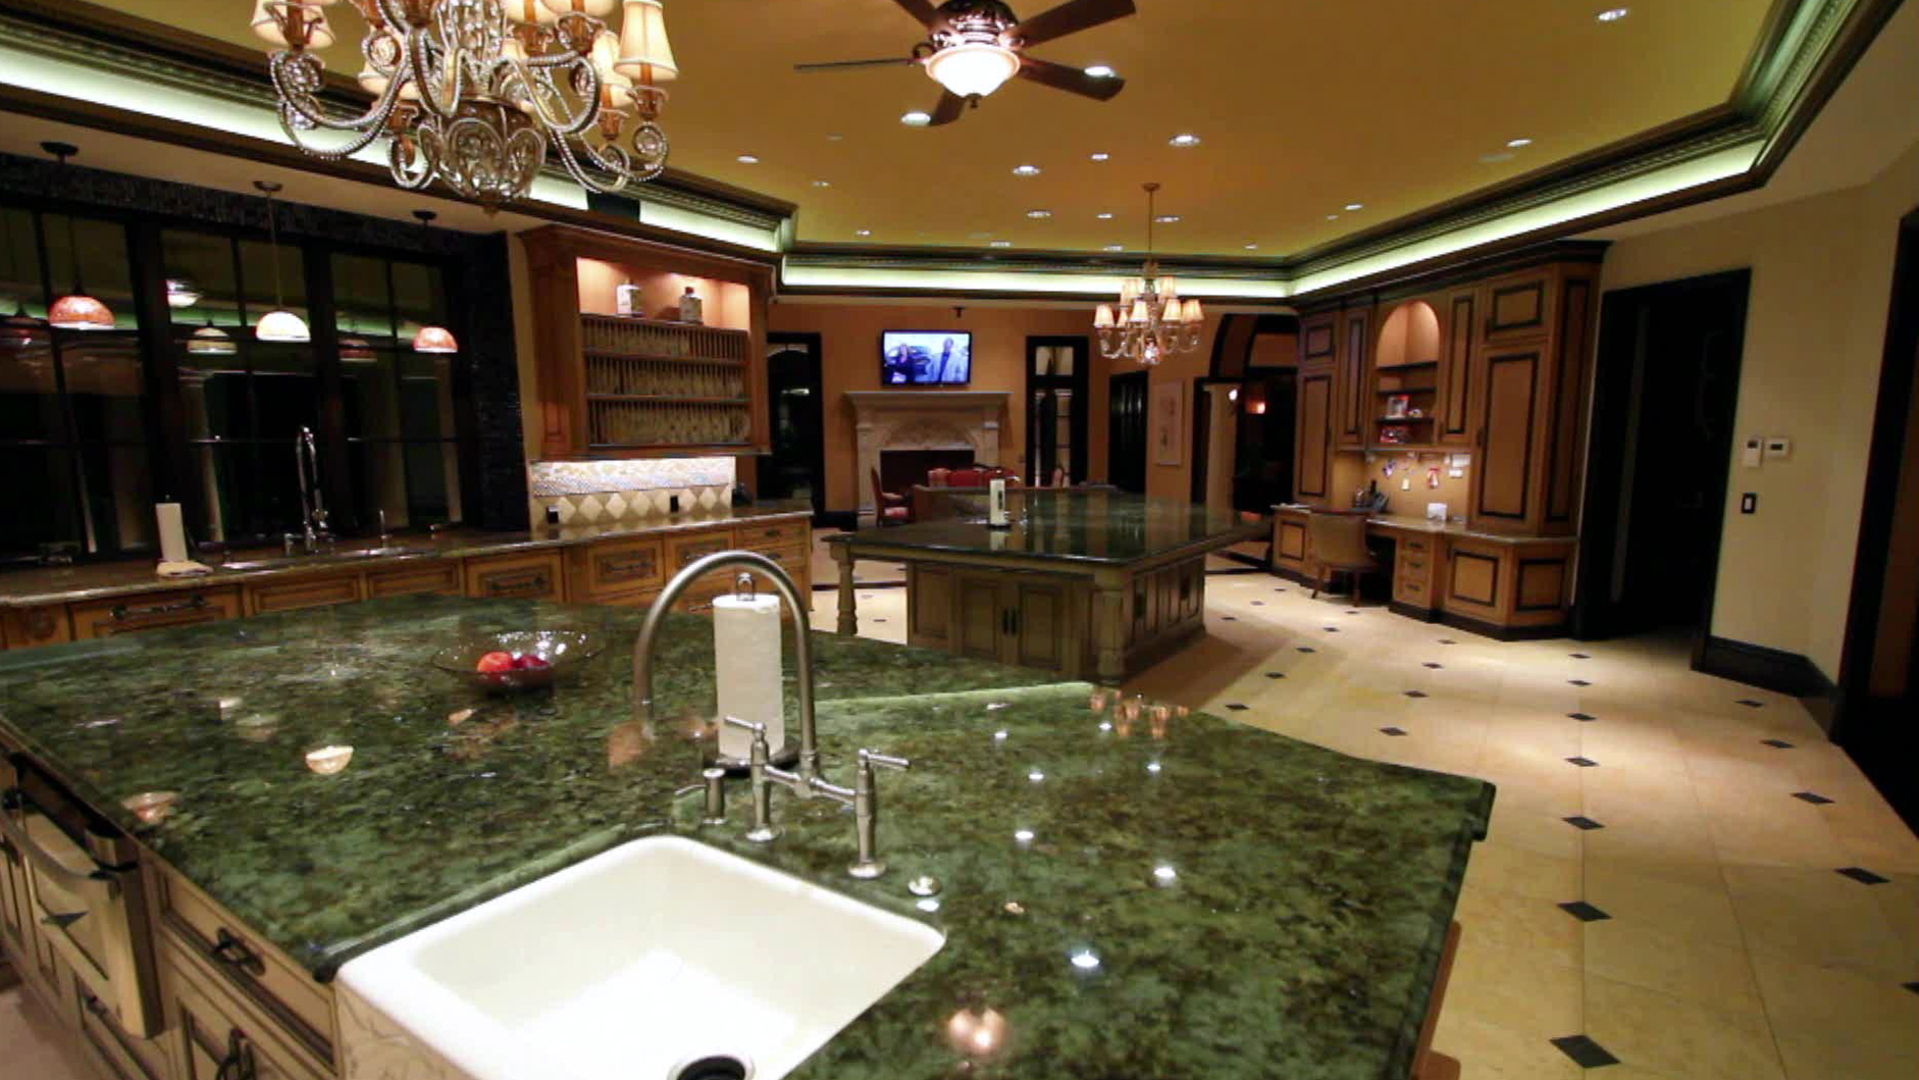 Amazing 2-story Gym, Kitchen, & One-of-a-kind Indoor Pool ...